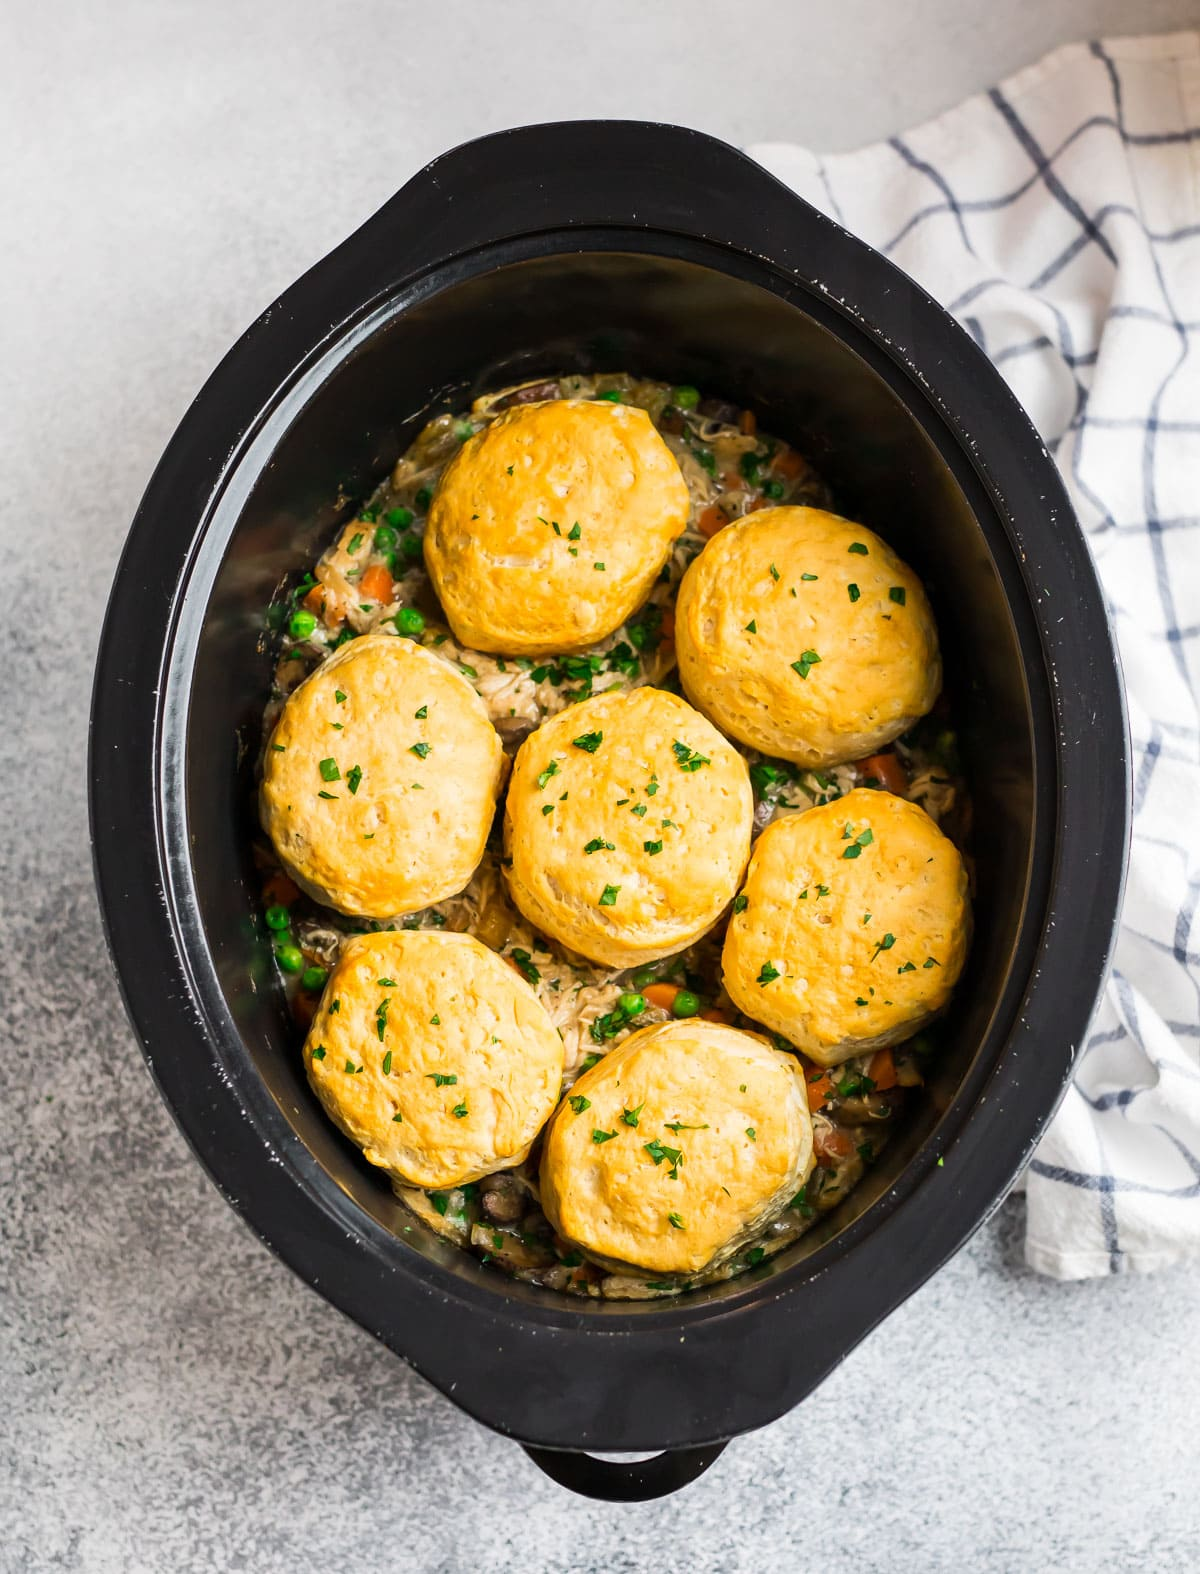 Easy crock pot chicken pot pie with biscuits and vegetables